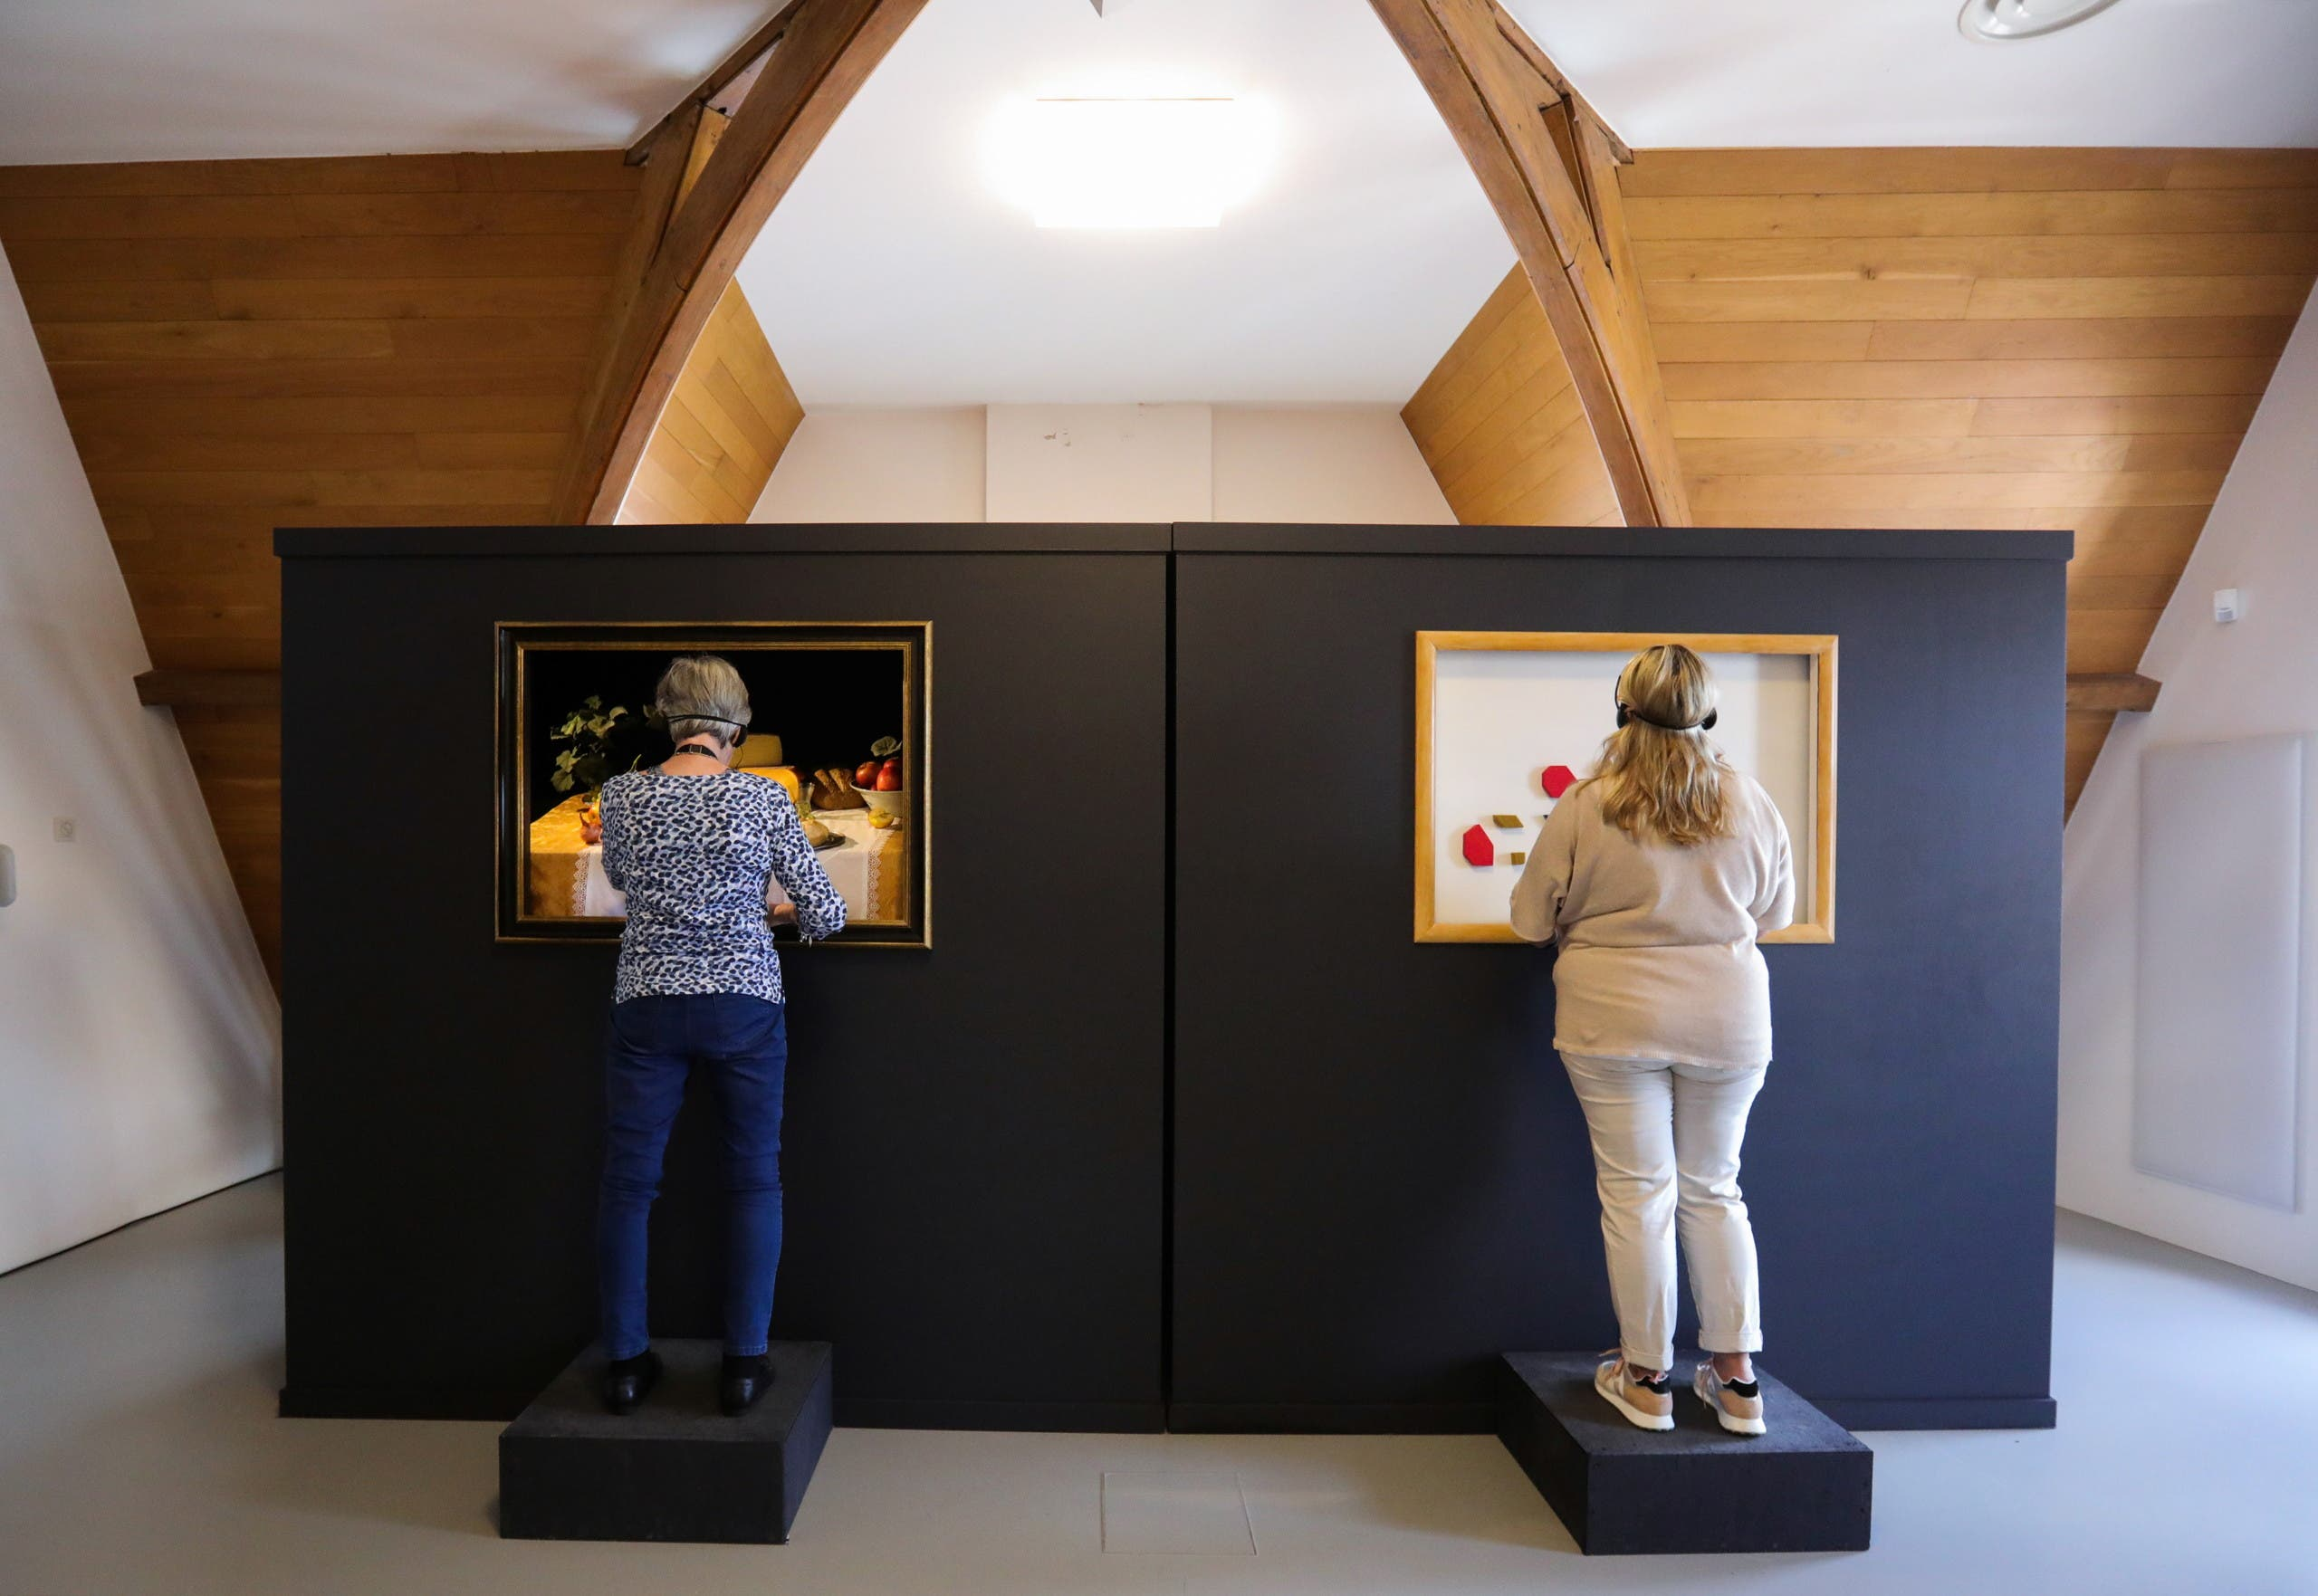 Visitors interact during the exhibition The Blind Spot by artist Jasper Udink ten Cate and experience designer Jeroen Prins, aimed for blind and visually impaired visitors to appreciate art by touching and smelling at Centraal Museum in Utrecht, Netherlands, August 14, 2021. Picture taken August 14, 2021. (Reuters)